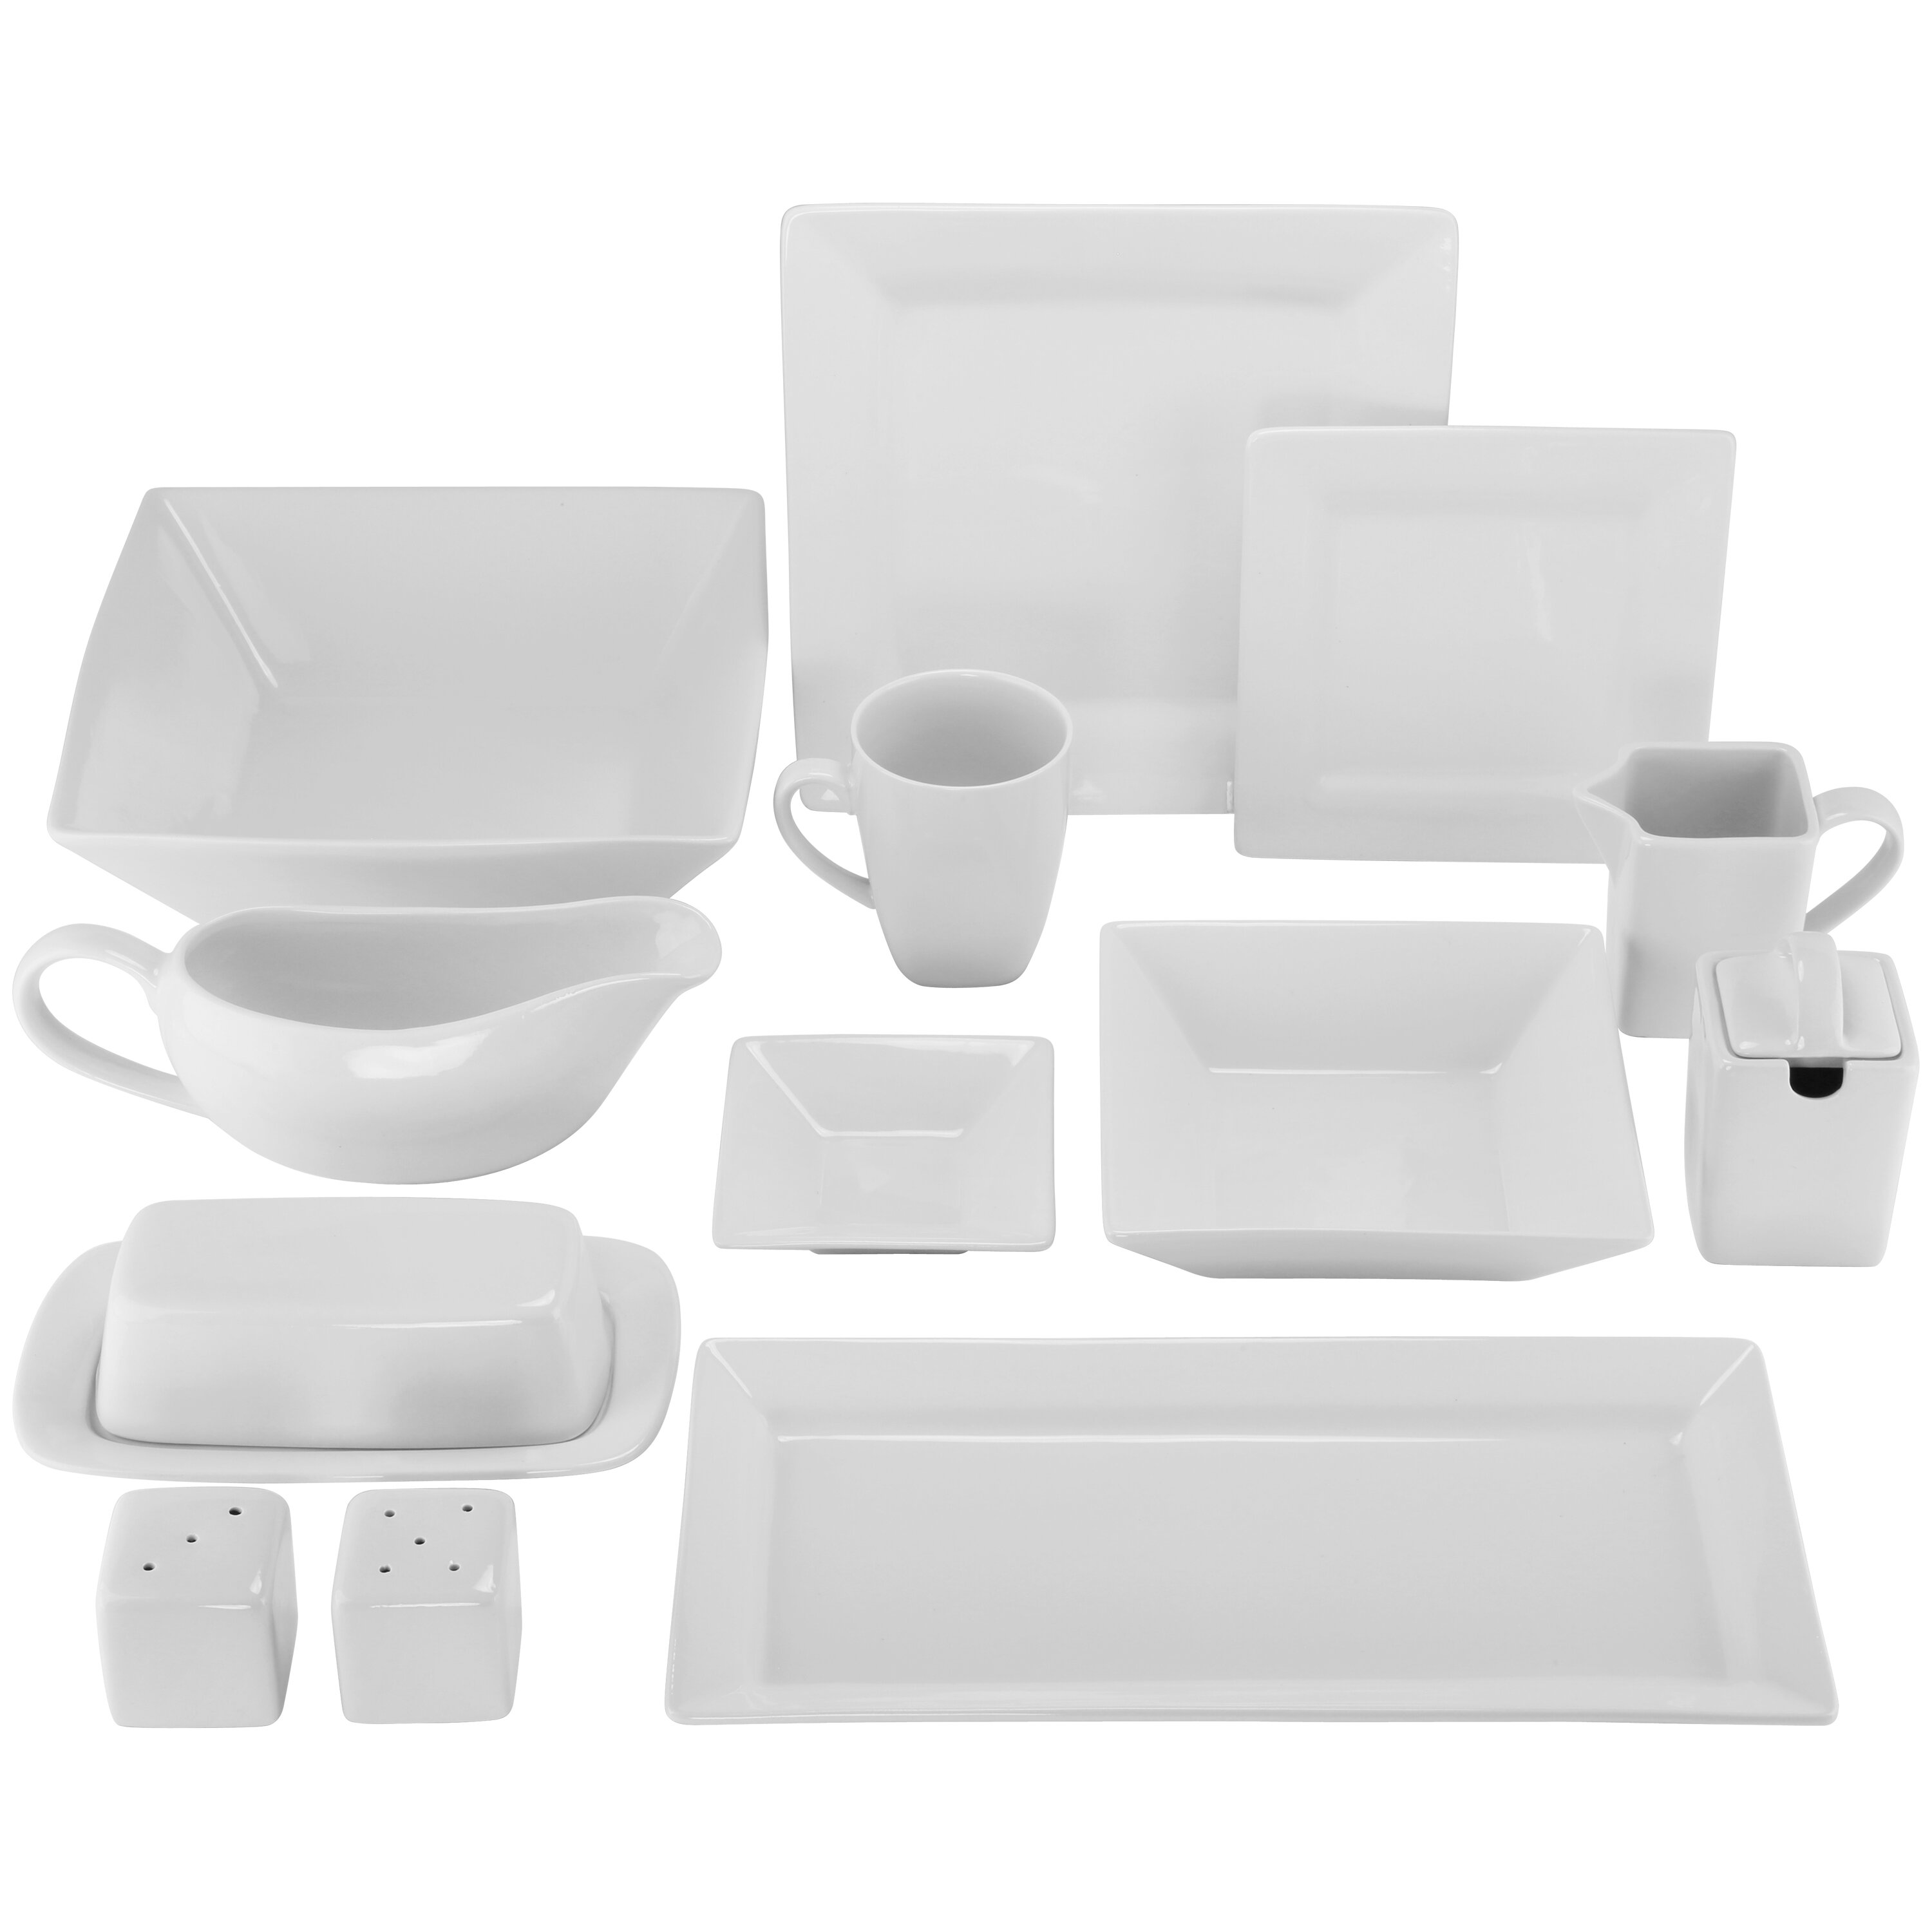 Hotel Collection Plates: Ten Strawberry Street 40 Piece Porcelain Dinnerware Set